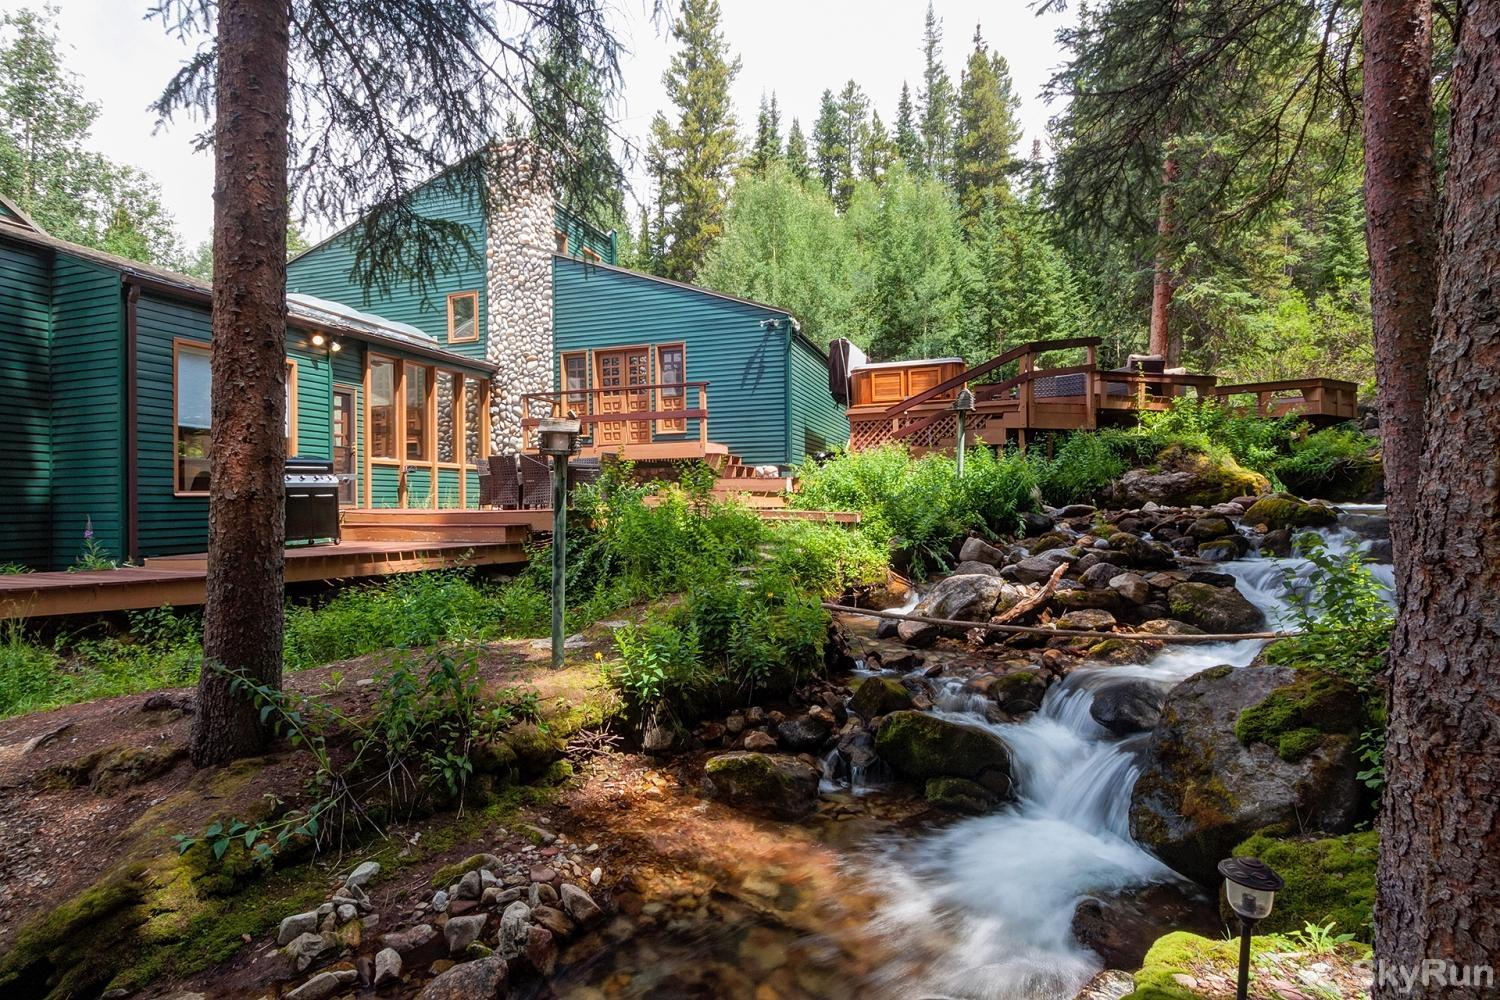 Creekside Chateau Majestic creekside Breckenridge vacation home